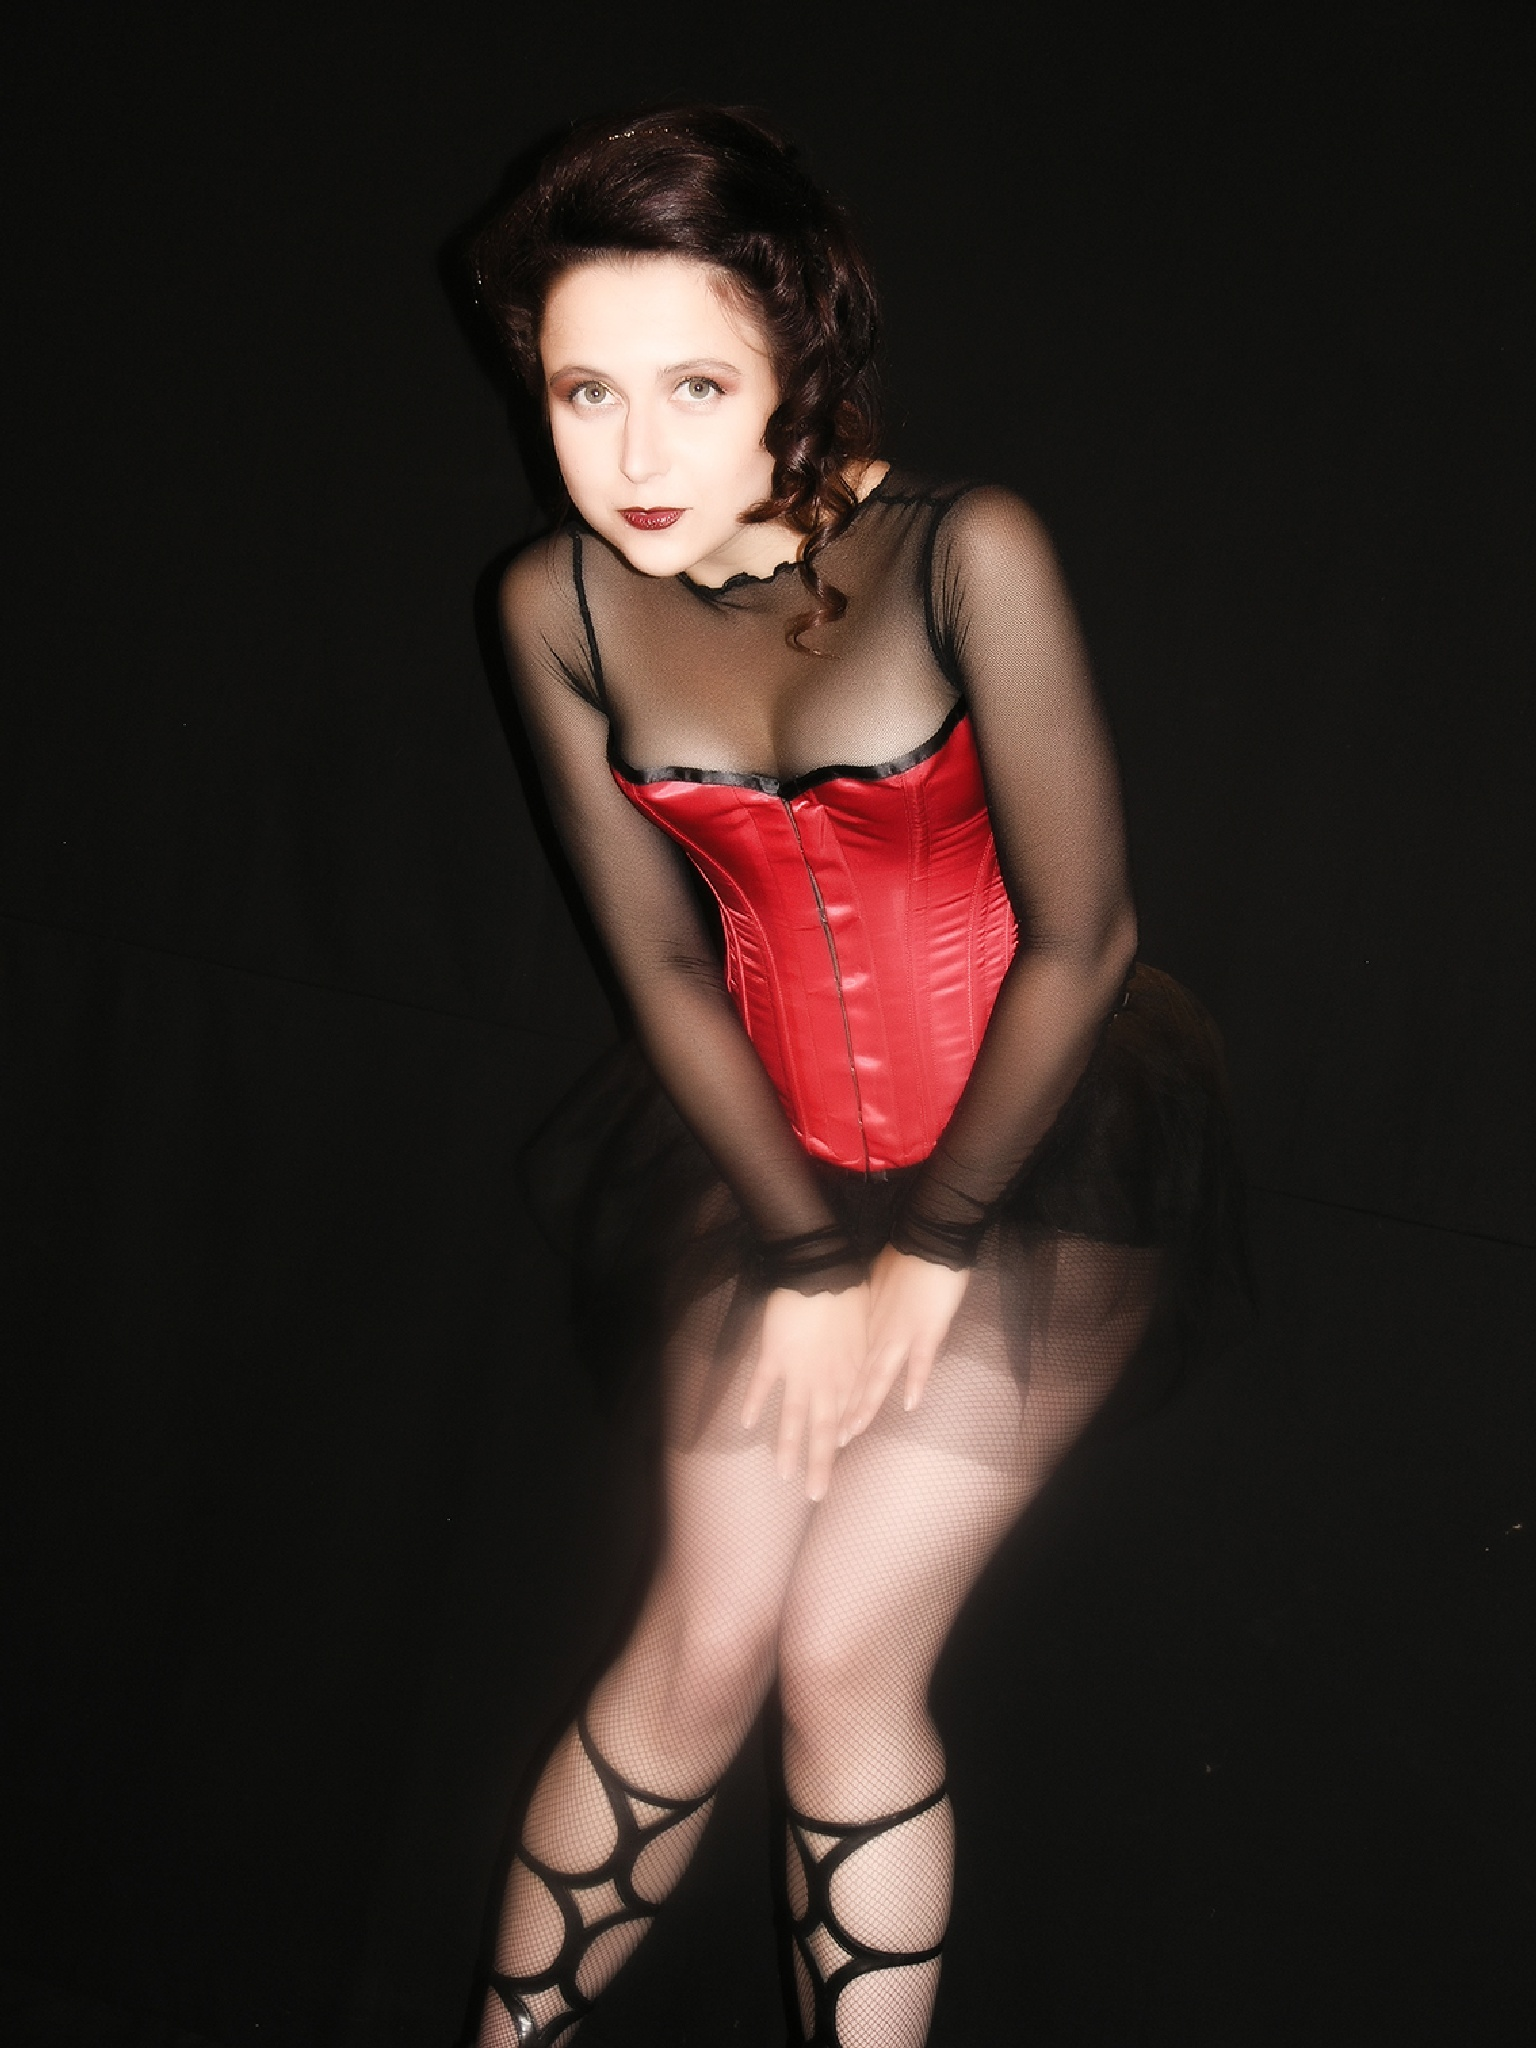 red corset girl by Hybryds